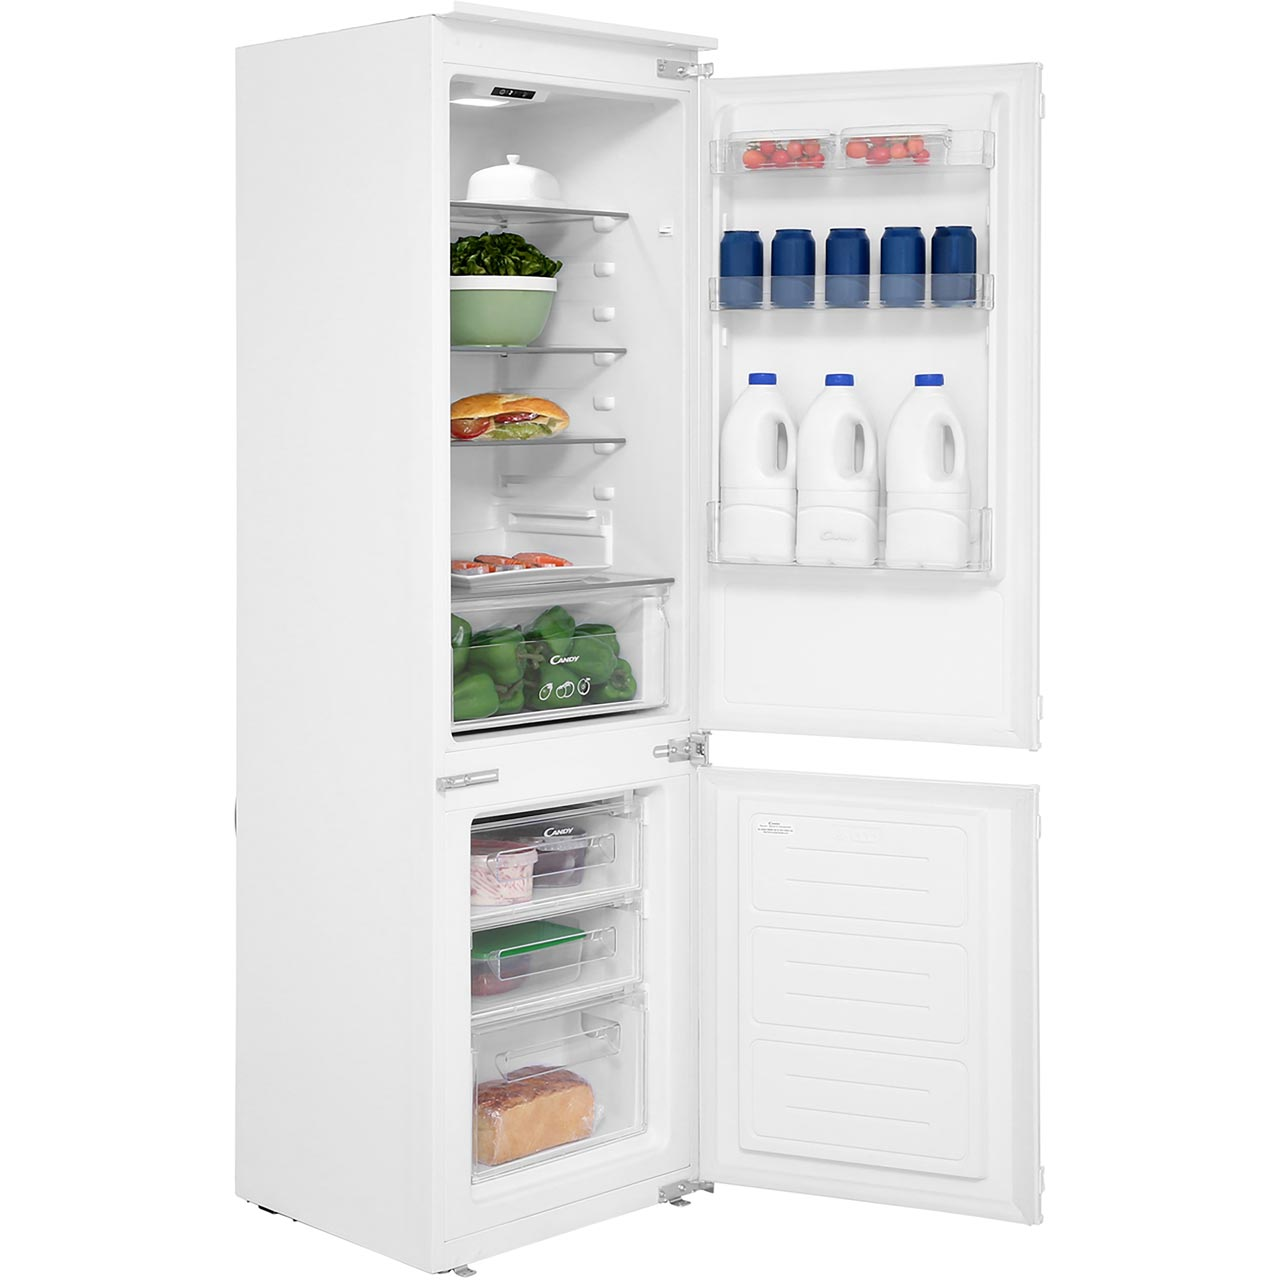 Refrigerators Candy (Kandy): models, reviews about the manufacturer, comparison with competitors 24